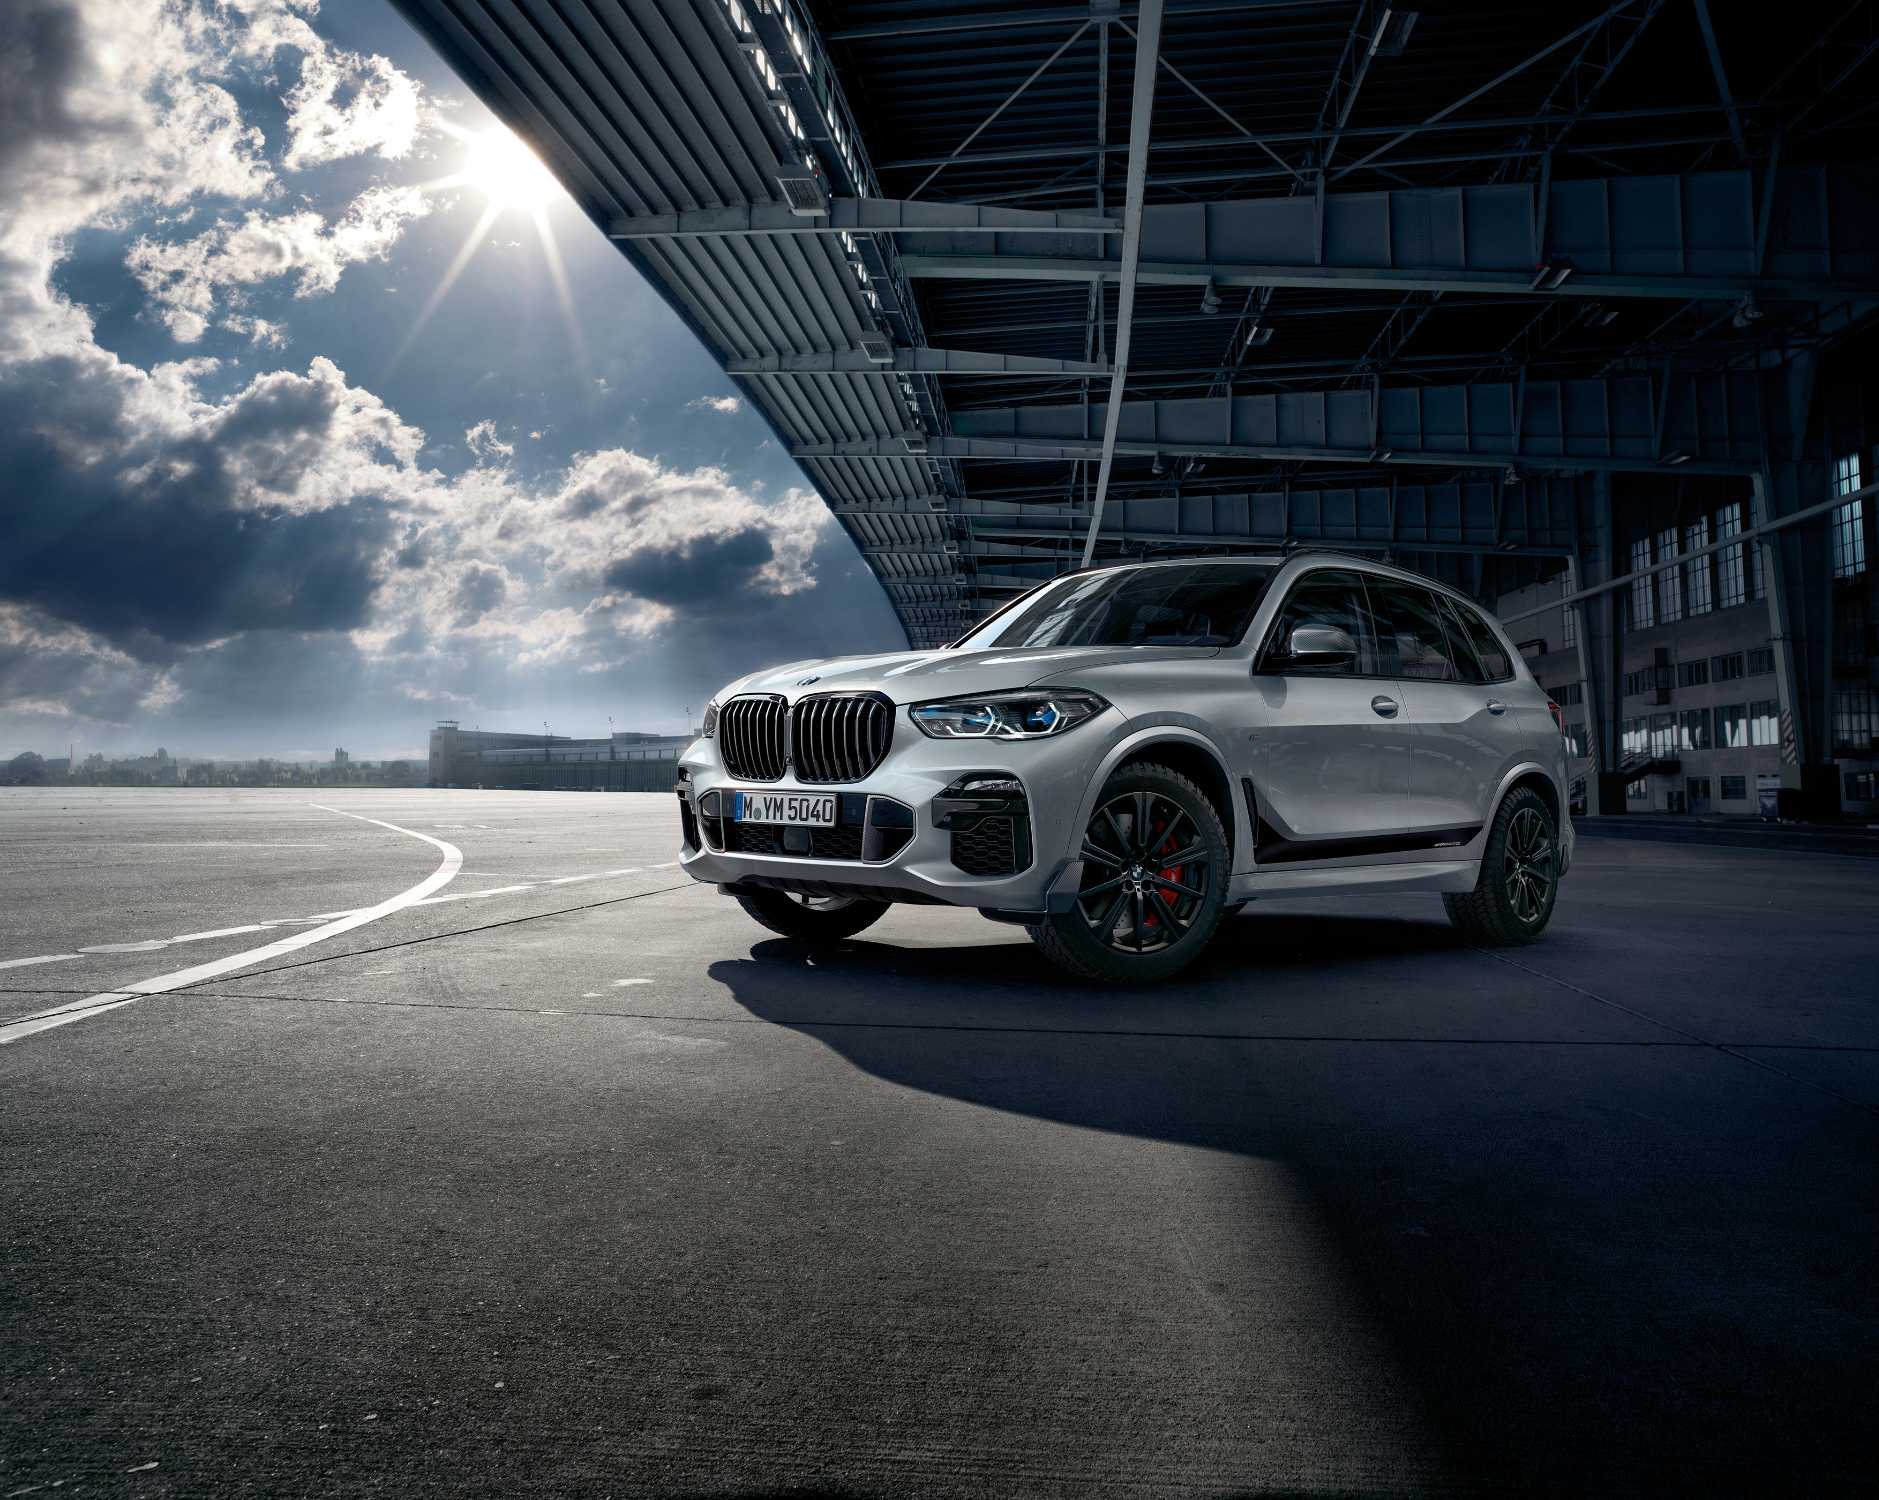 d4aa727b984 The new BMW X5 with M Performance Parts.